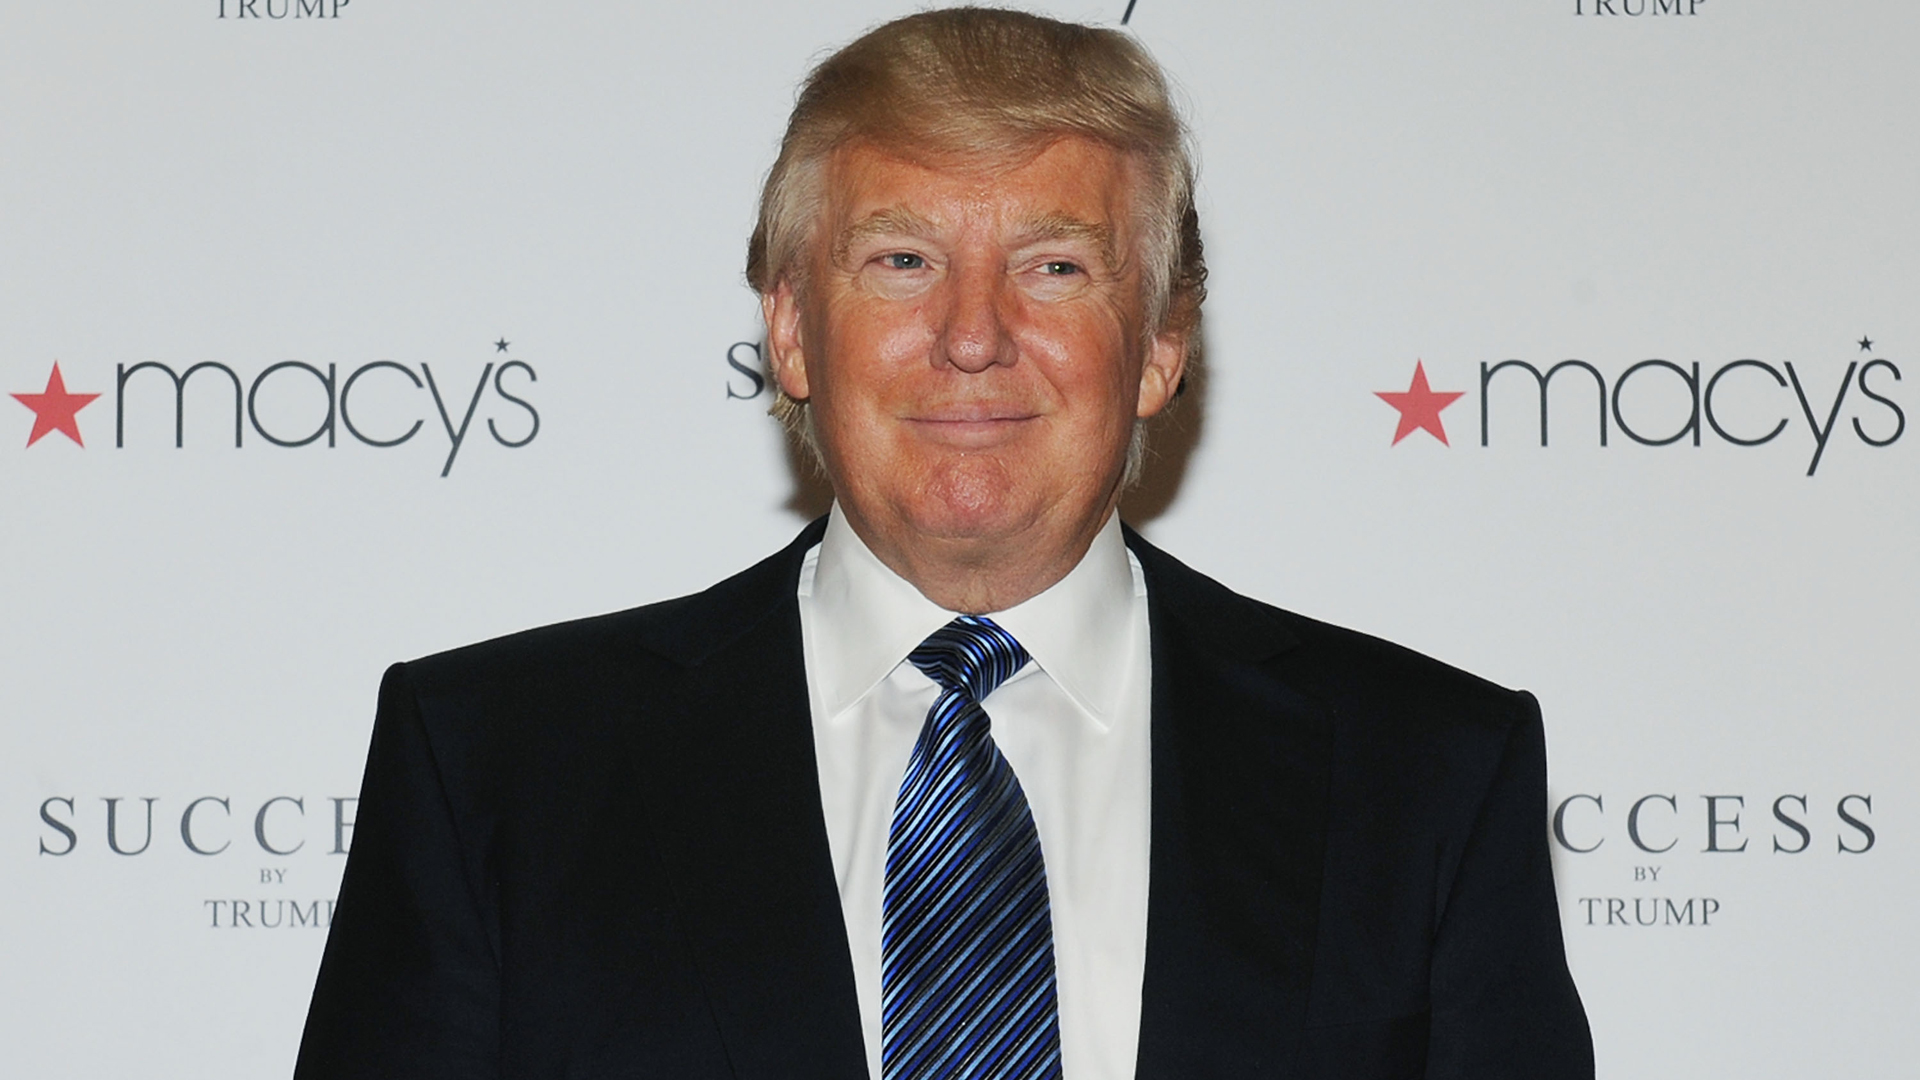 Donald Trump Images President Trump Hd Wallpaper And Background